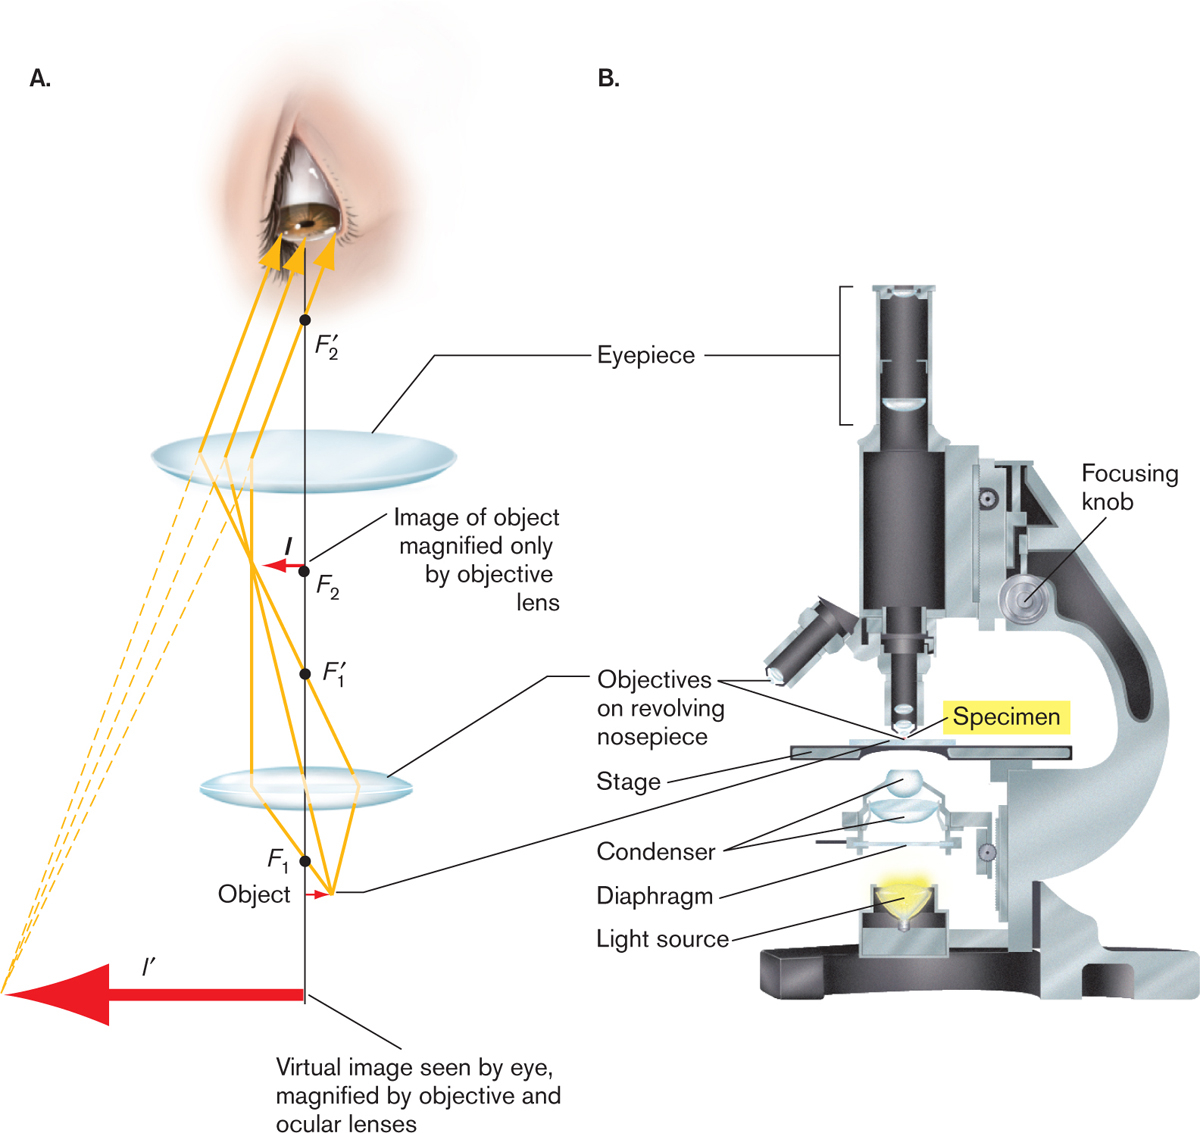 Microbiology 4e figure 215 anatomy of a compound microscope a light path through the microscope b cutaway view ccuart Images